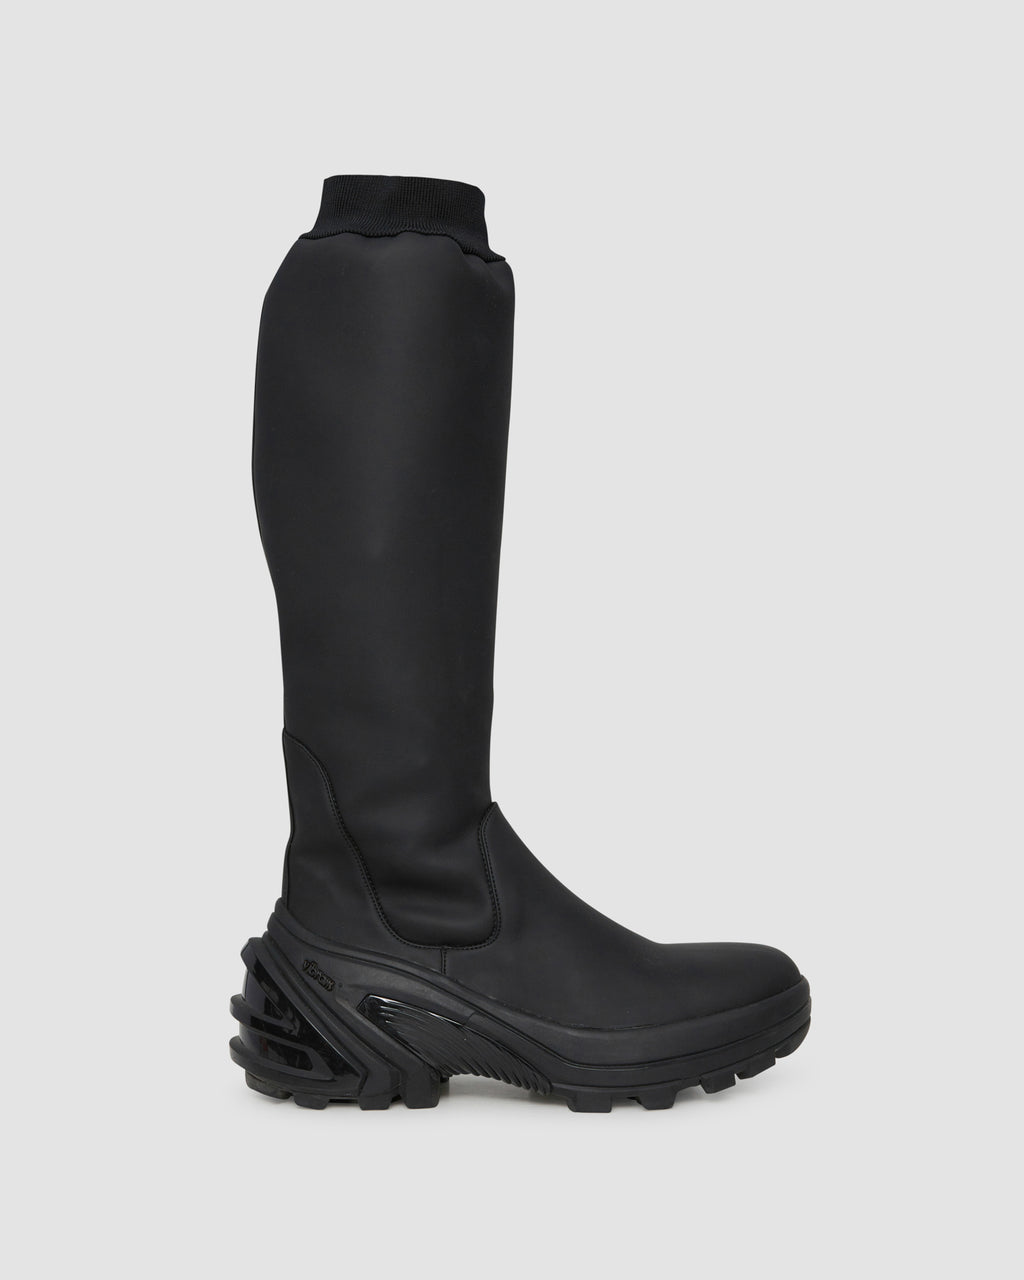 KNEE BOOT WITH FIXED SOLE